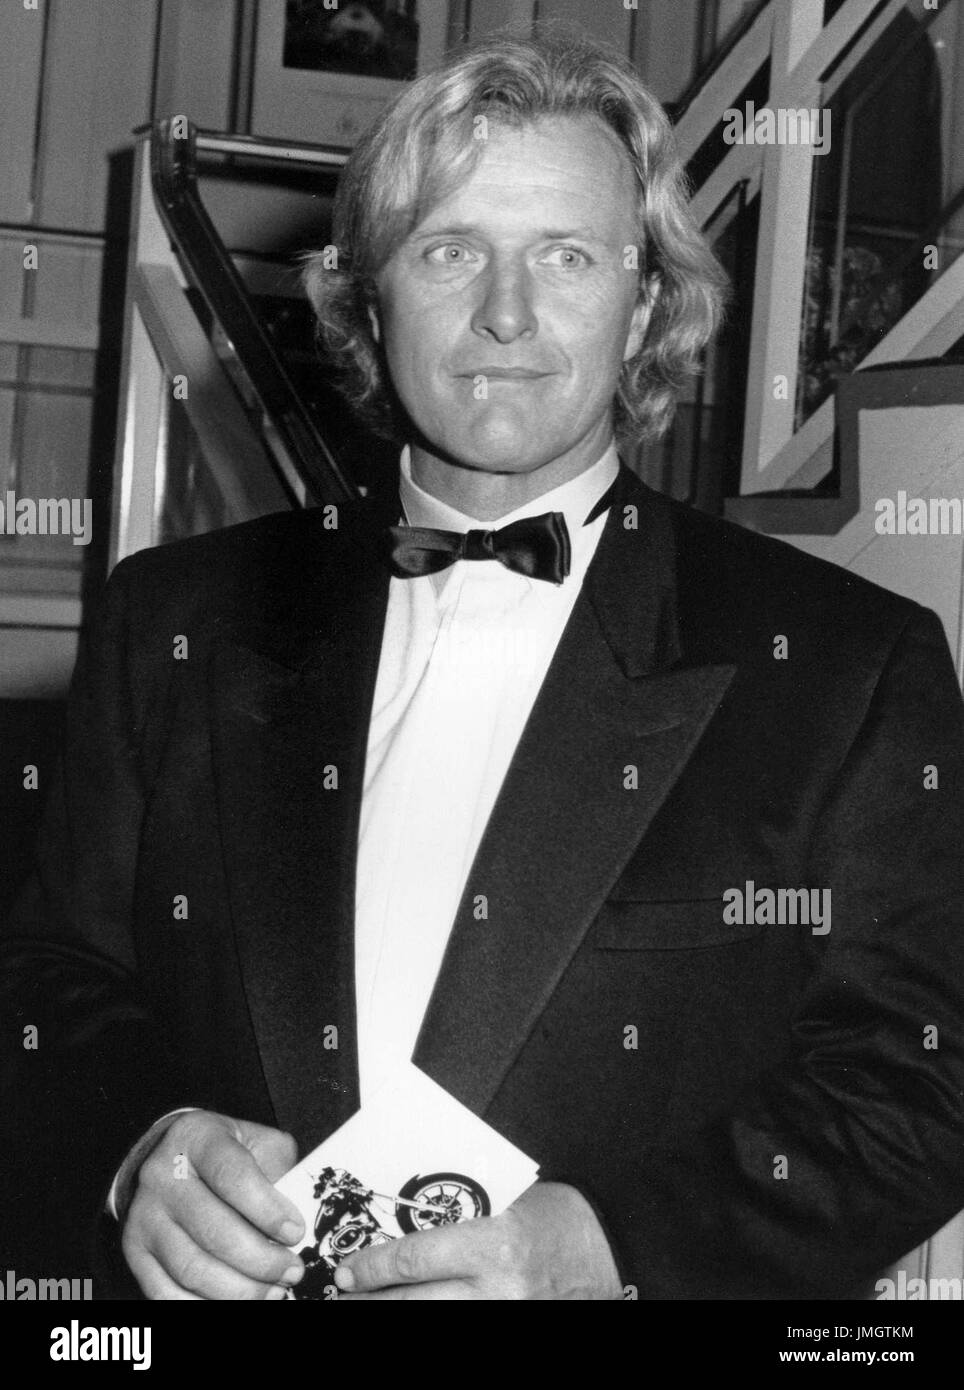 Rutger Hauer, Dutch actor, attends the British Videogram awards in London, England on October 18, 1990. He is well known for his part in science fiction film Blade Runner. - Stock Image